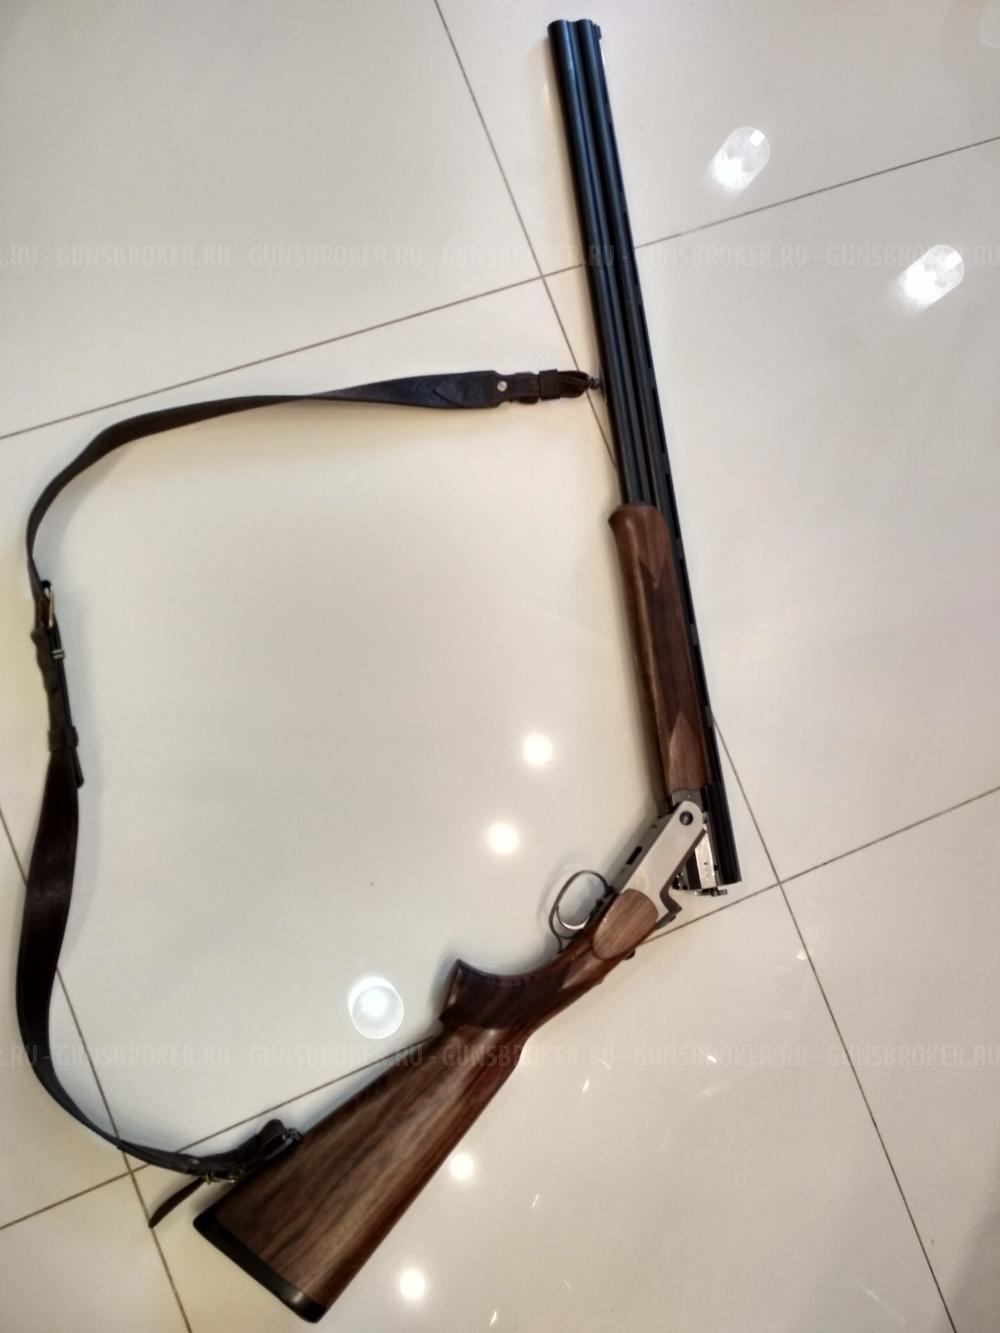 Blaser F3 Standard Competition Sporting